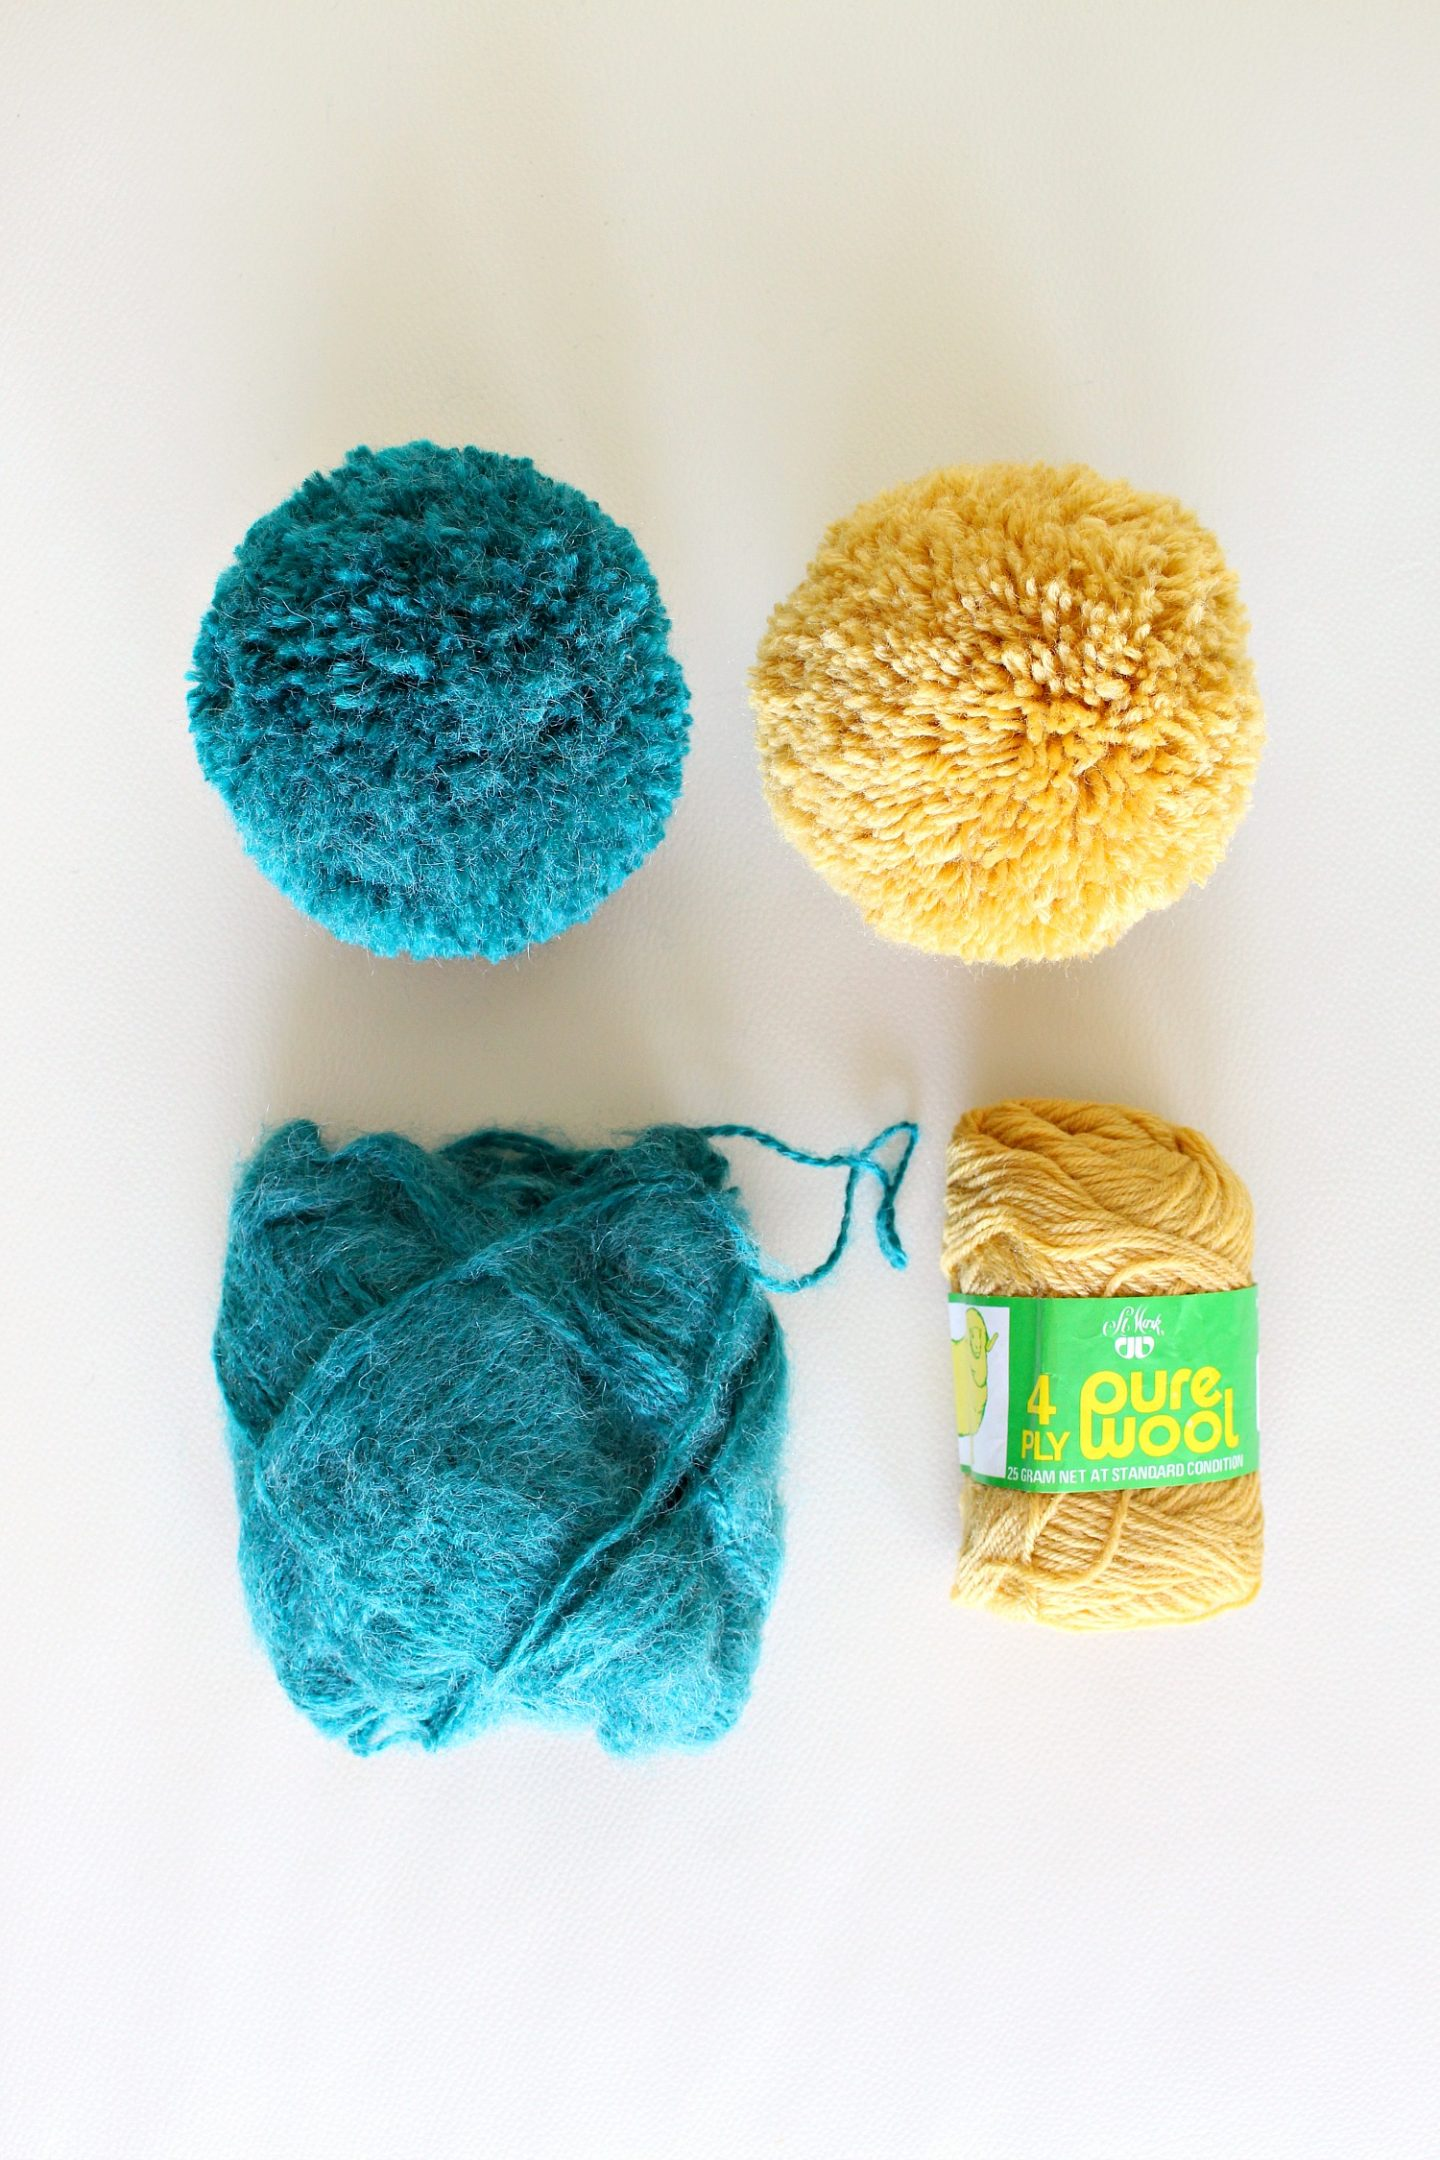 The Best Yarn to Make a Dense Pom Pom